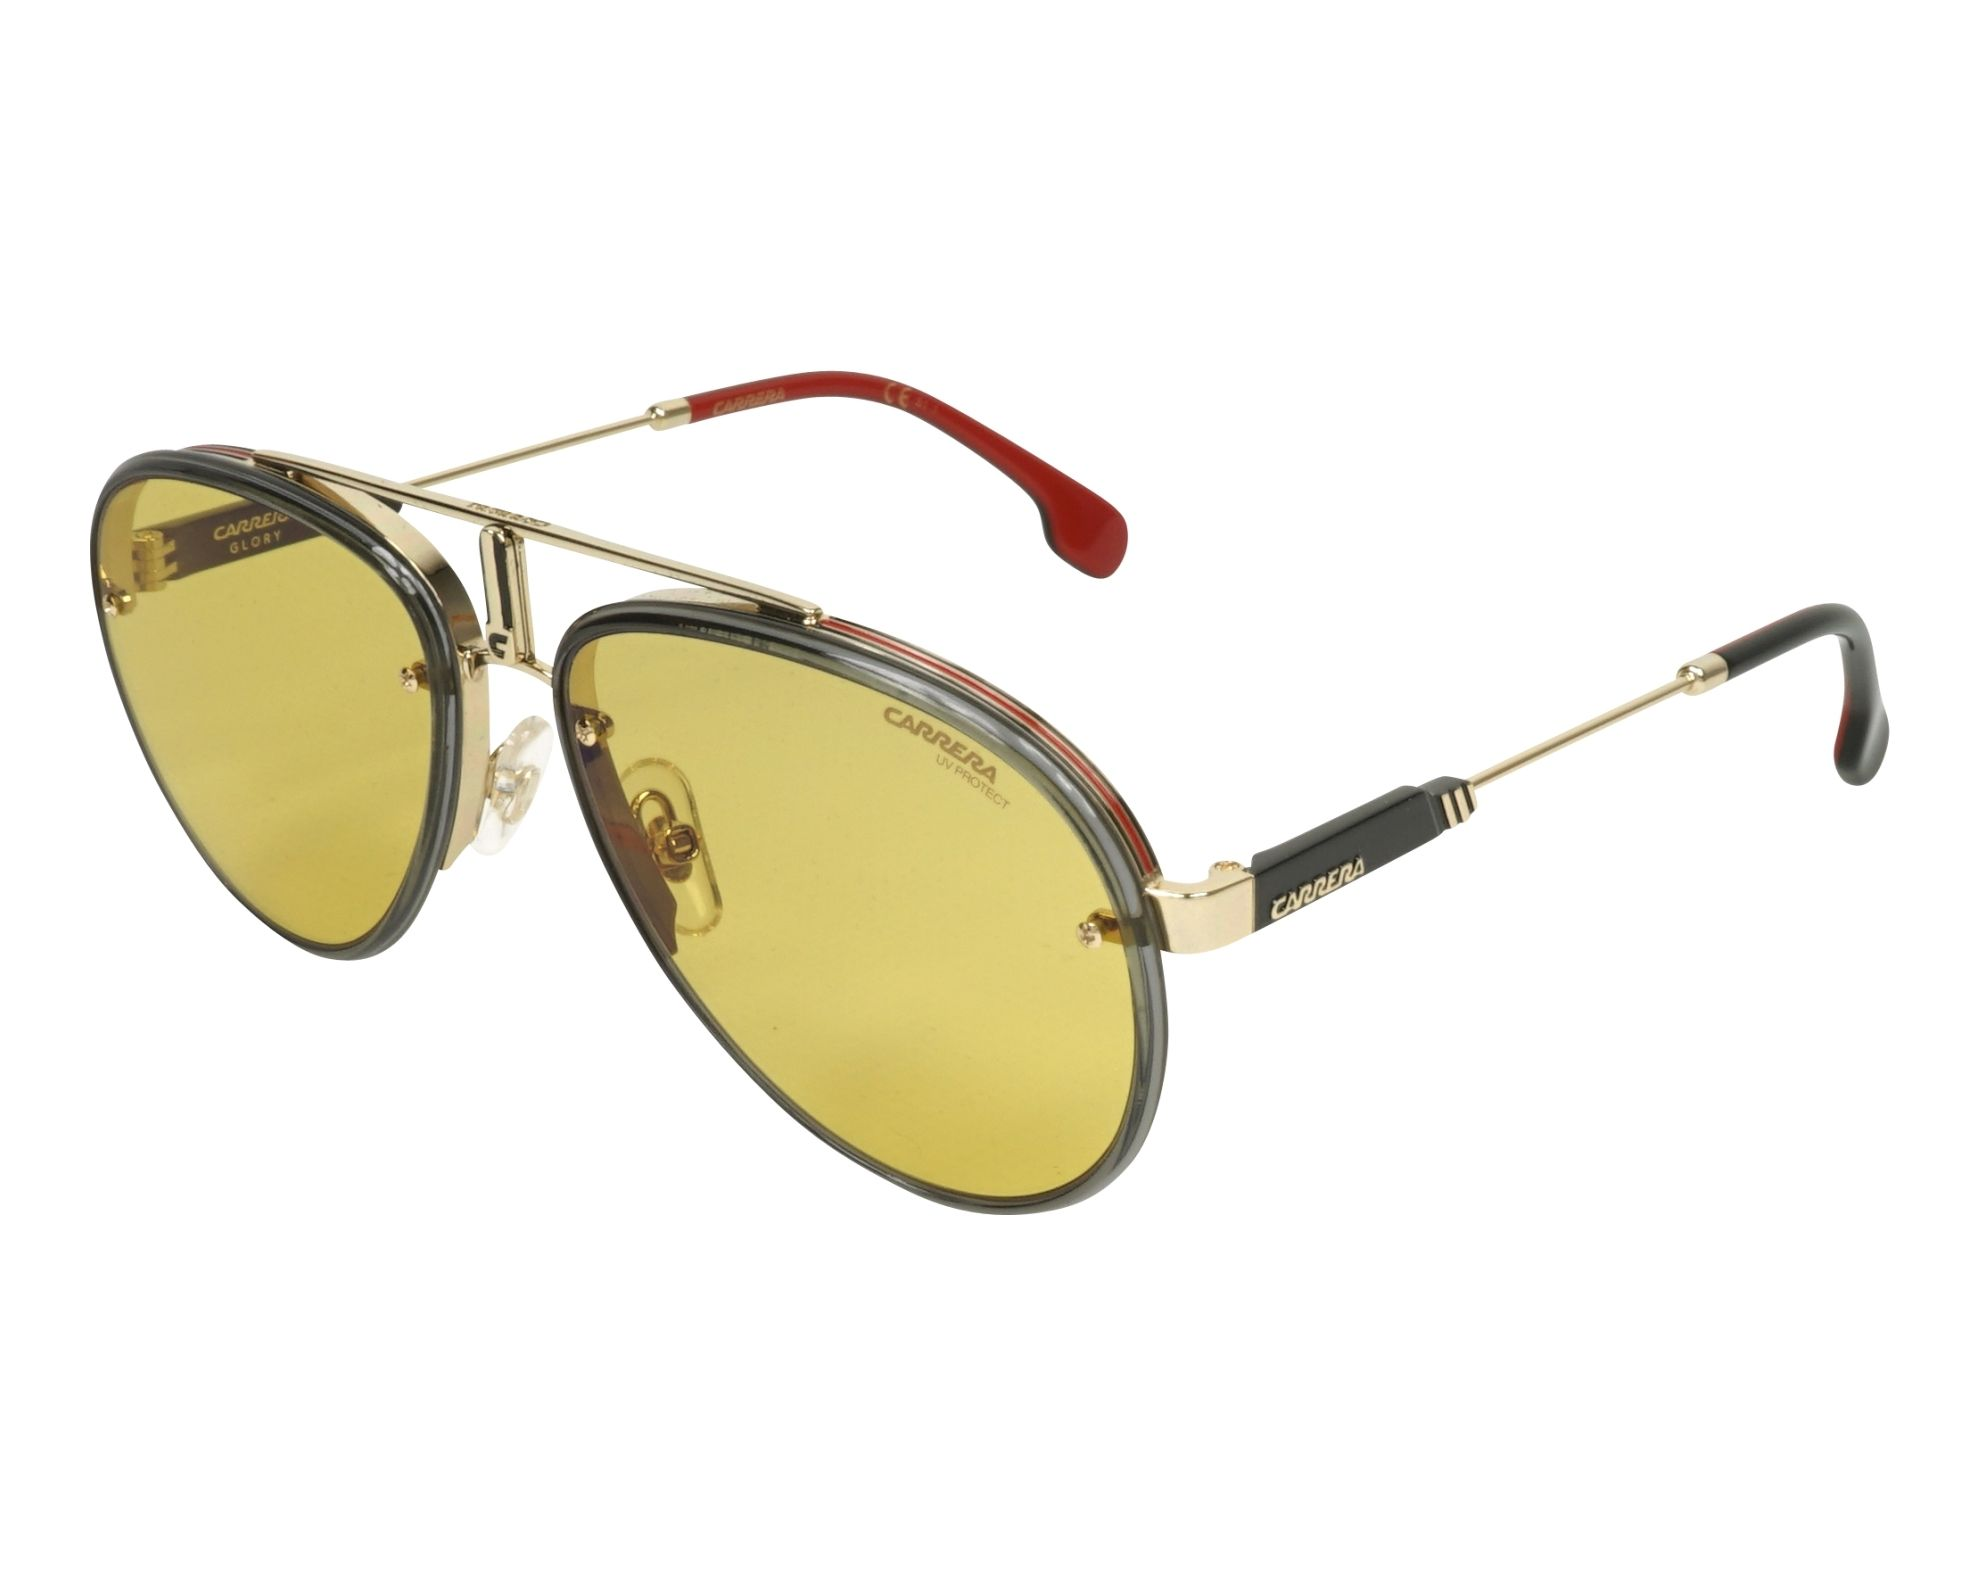 9bea5af5eb5 Sunglasses Carrera GLORY DYG HW 58-17 Gold Grey profile view